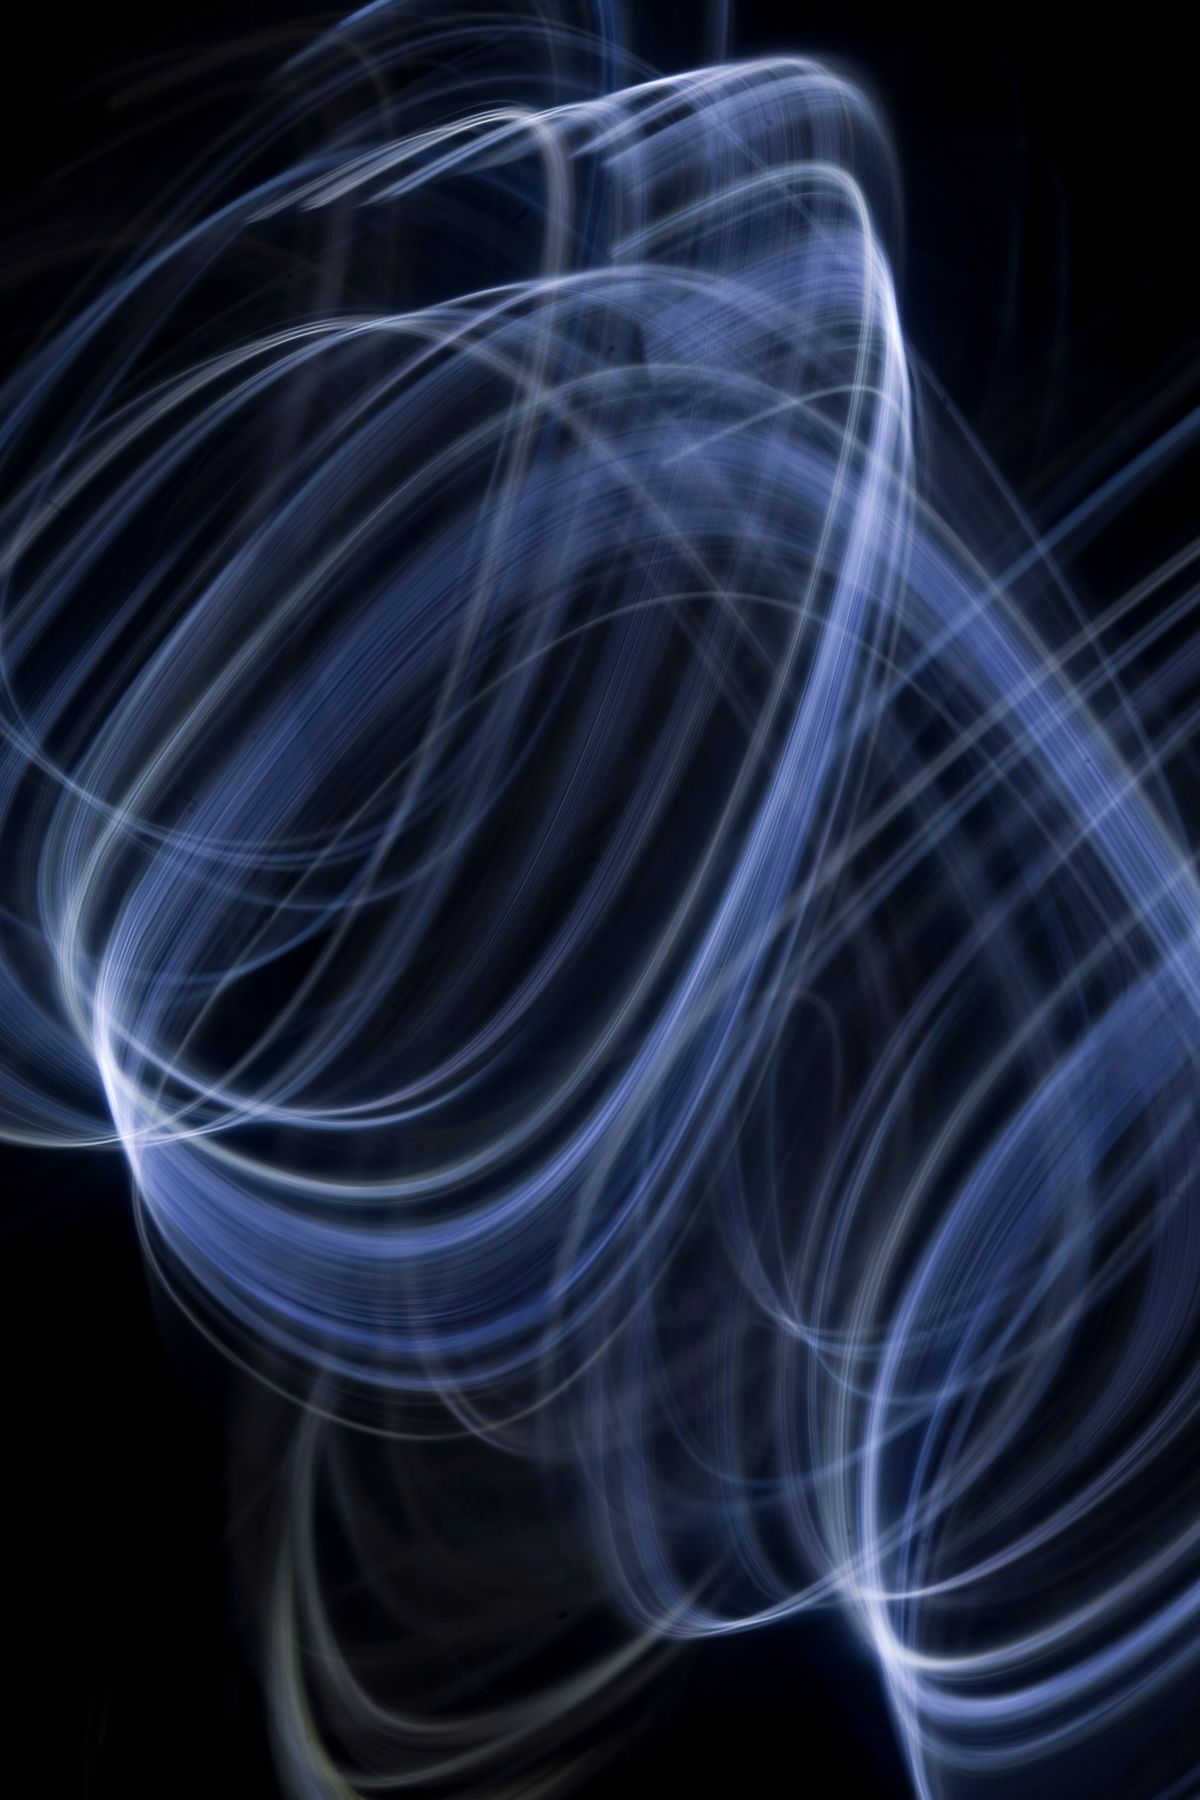 Light Abstraction, 2009, Abstract Photography, Shirine Gill